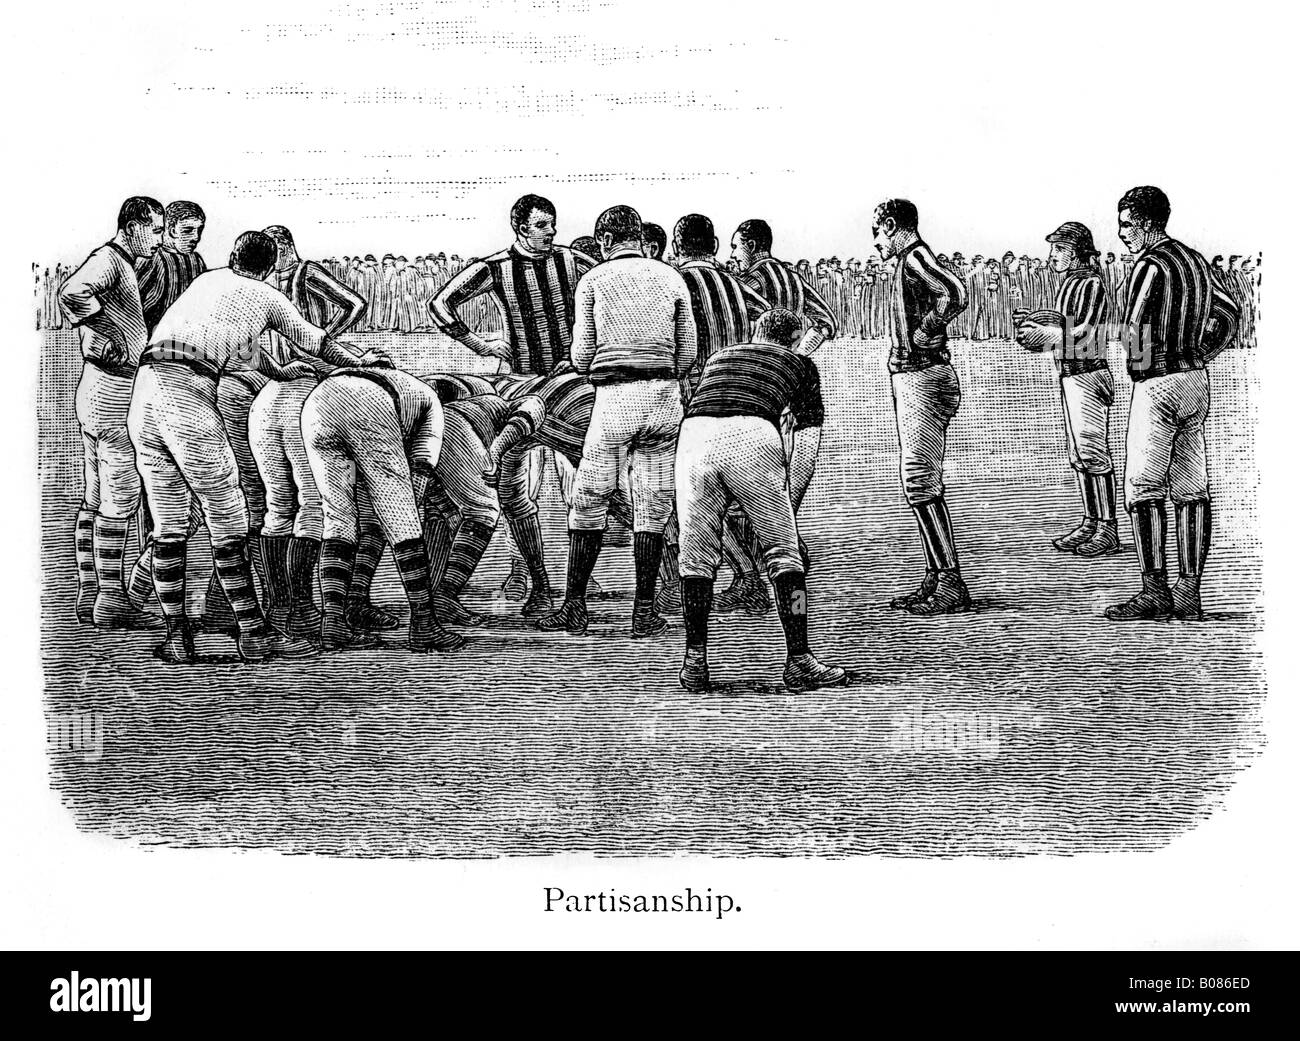 Victorian Rugby Partisanship engraving of match action from the 1887 book by Shearman on rugger - Stock Image